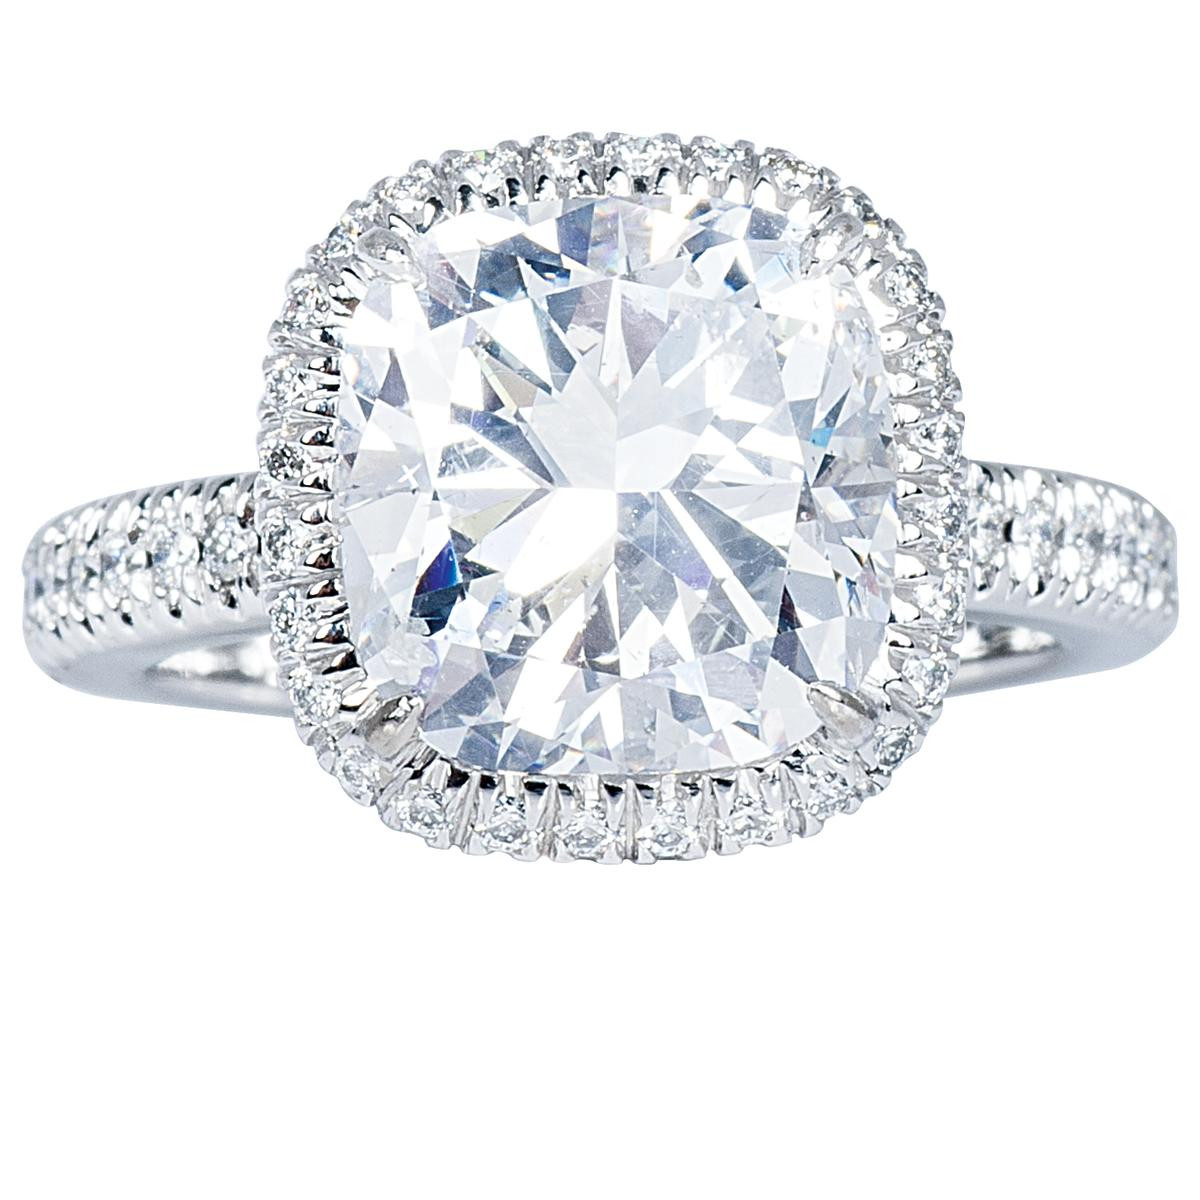 New 5.16 CTW Cushion-Cut Diamond Engagement Ring